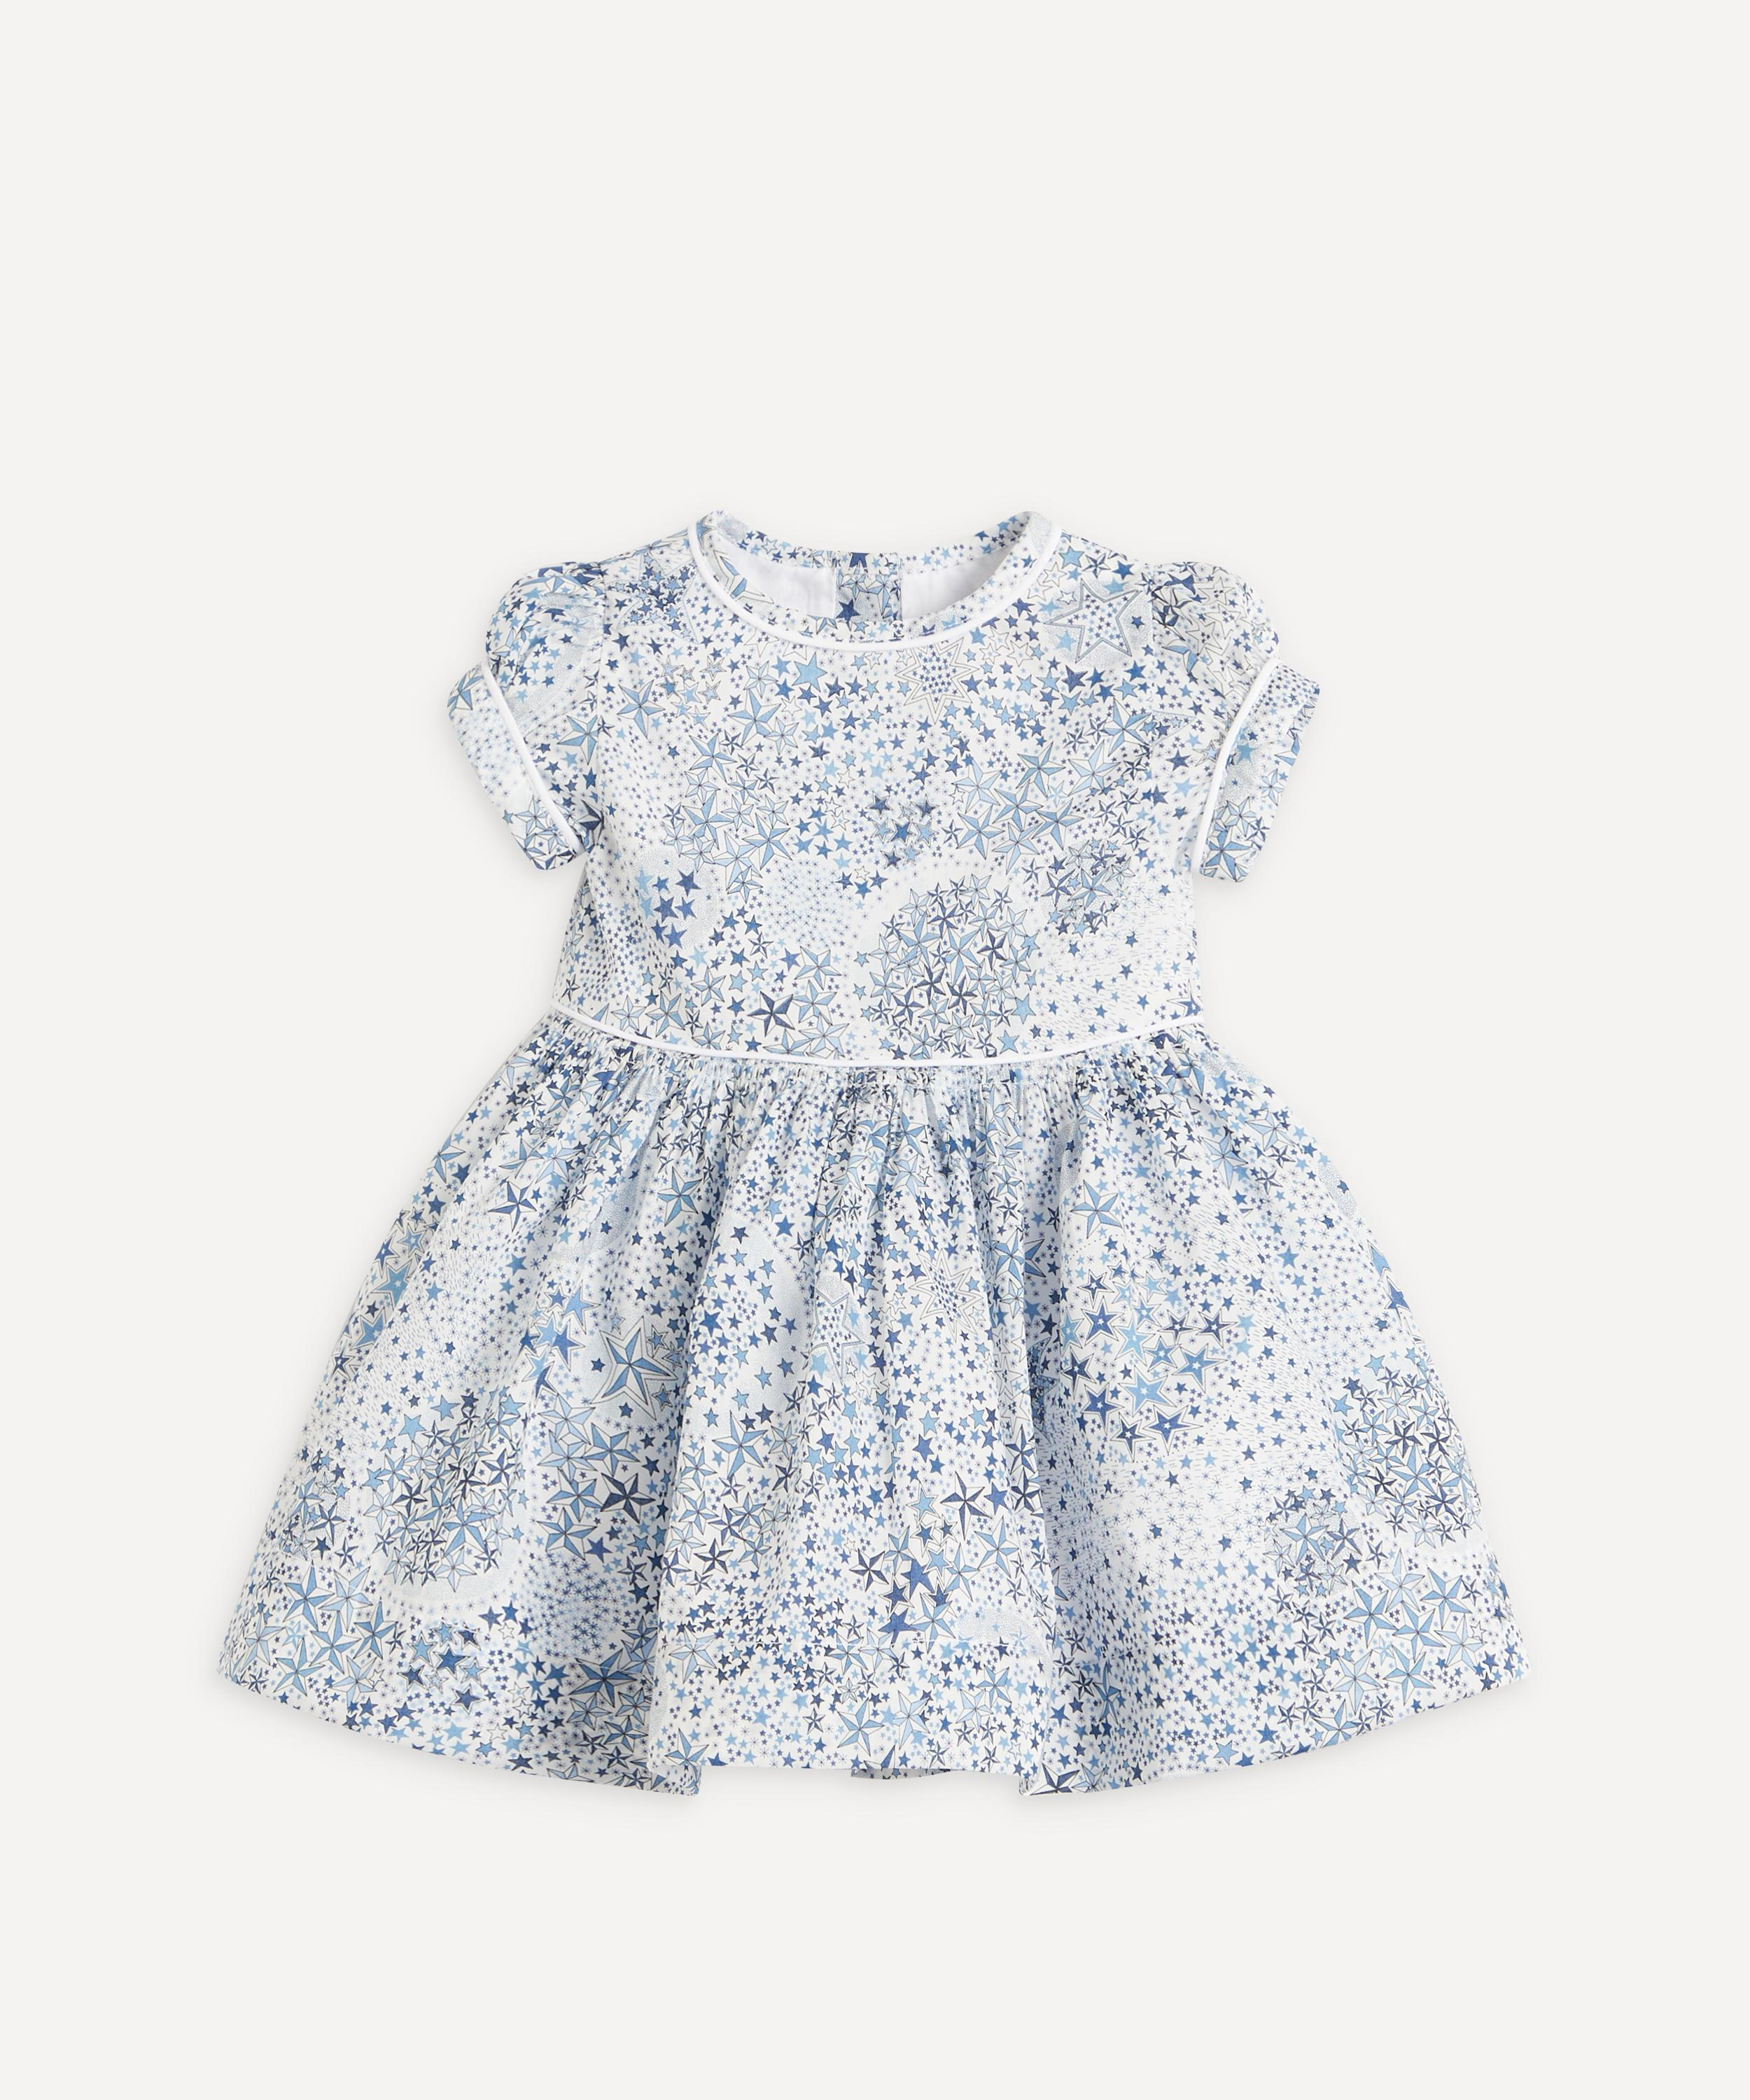 Liberty print tana lawn cotton dress with elephant yellow 3-4 years old